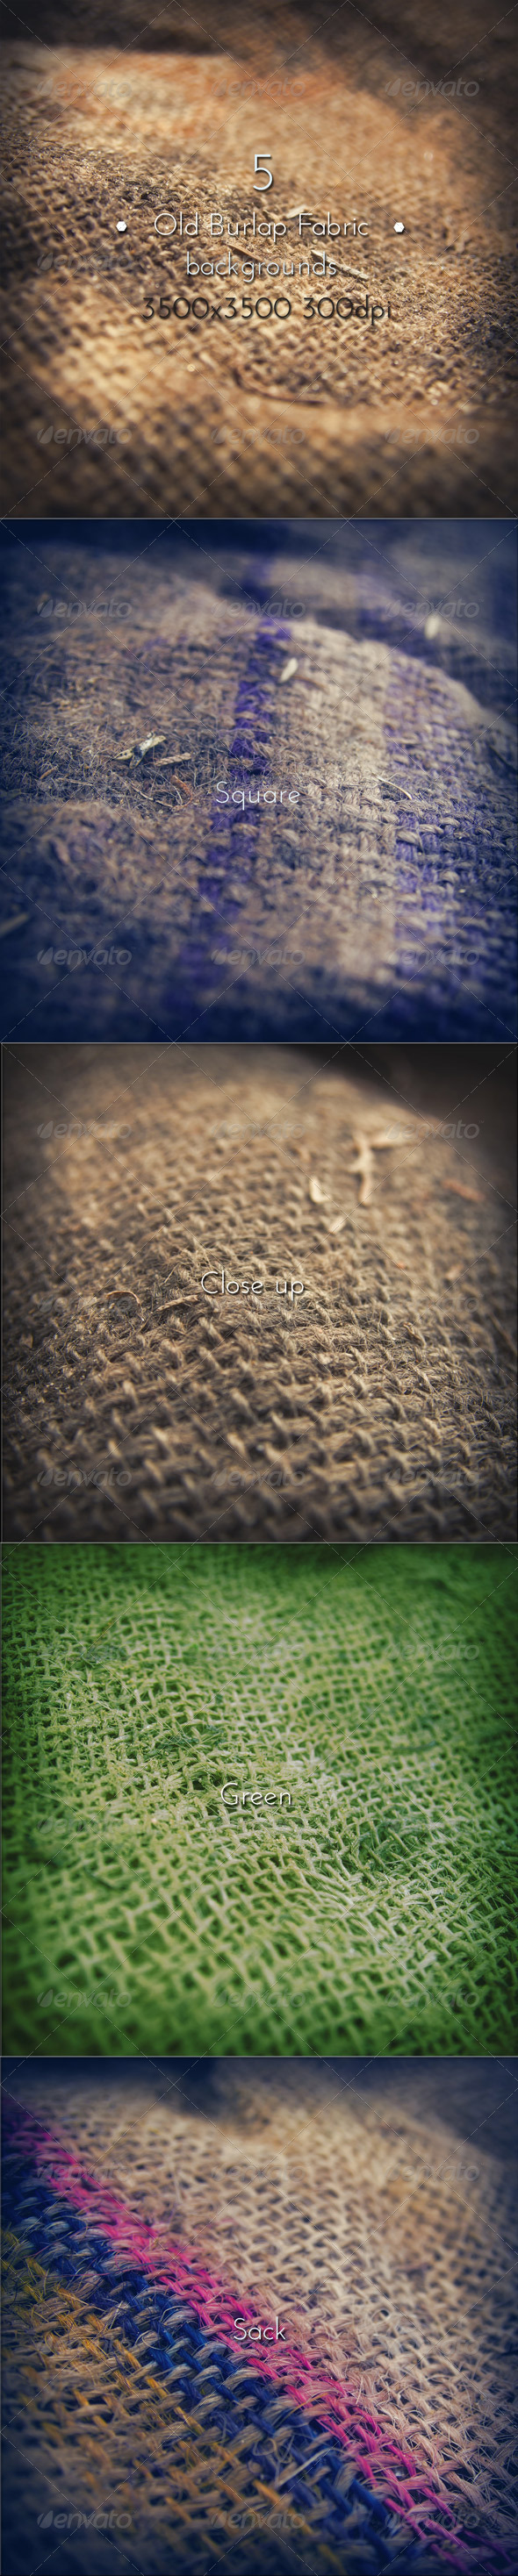 GraphicRiver Old Burlap Fabric Collection 8727484